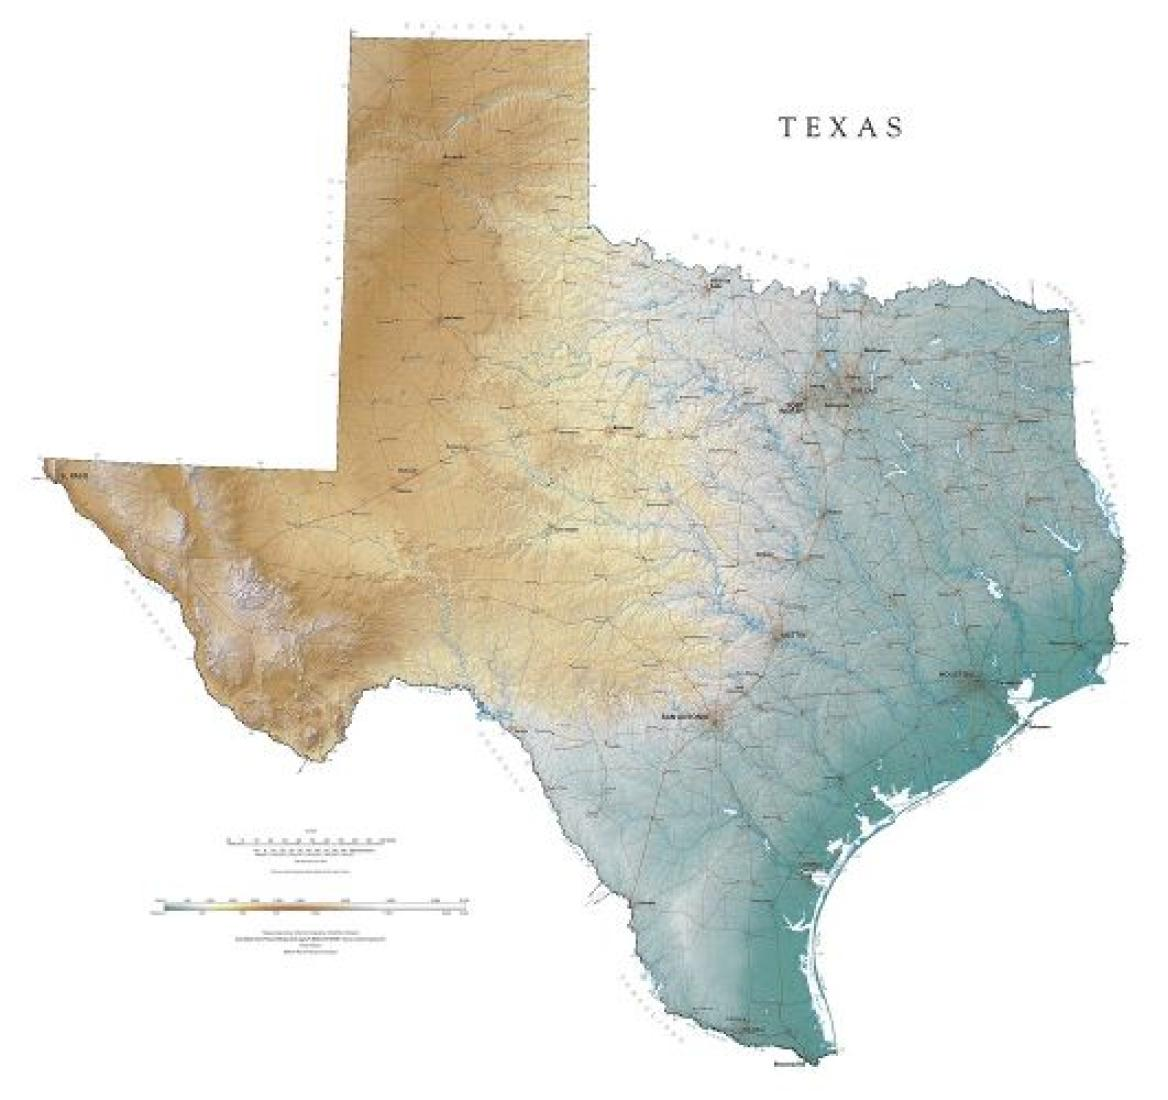 Texas, Physical Wall Map by Raven Maps on lakes of texas, detailed texas map with cities and towns, well known landmarks in texas, the three branch of texas, us map texas, hotels of texas, all cities in texas, mapquest maps south texas, austin texas, sun of texas, google of texas, weather of texas, detailed texas road atlas, winds of texas, project of texas, republic of texas, borger tx map texas, southern coast of texas, flickr texas, business of texas,